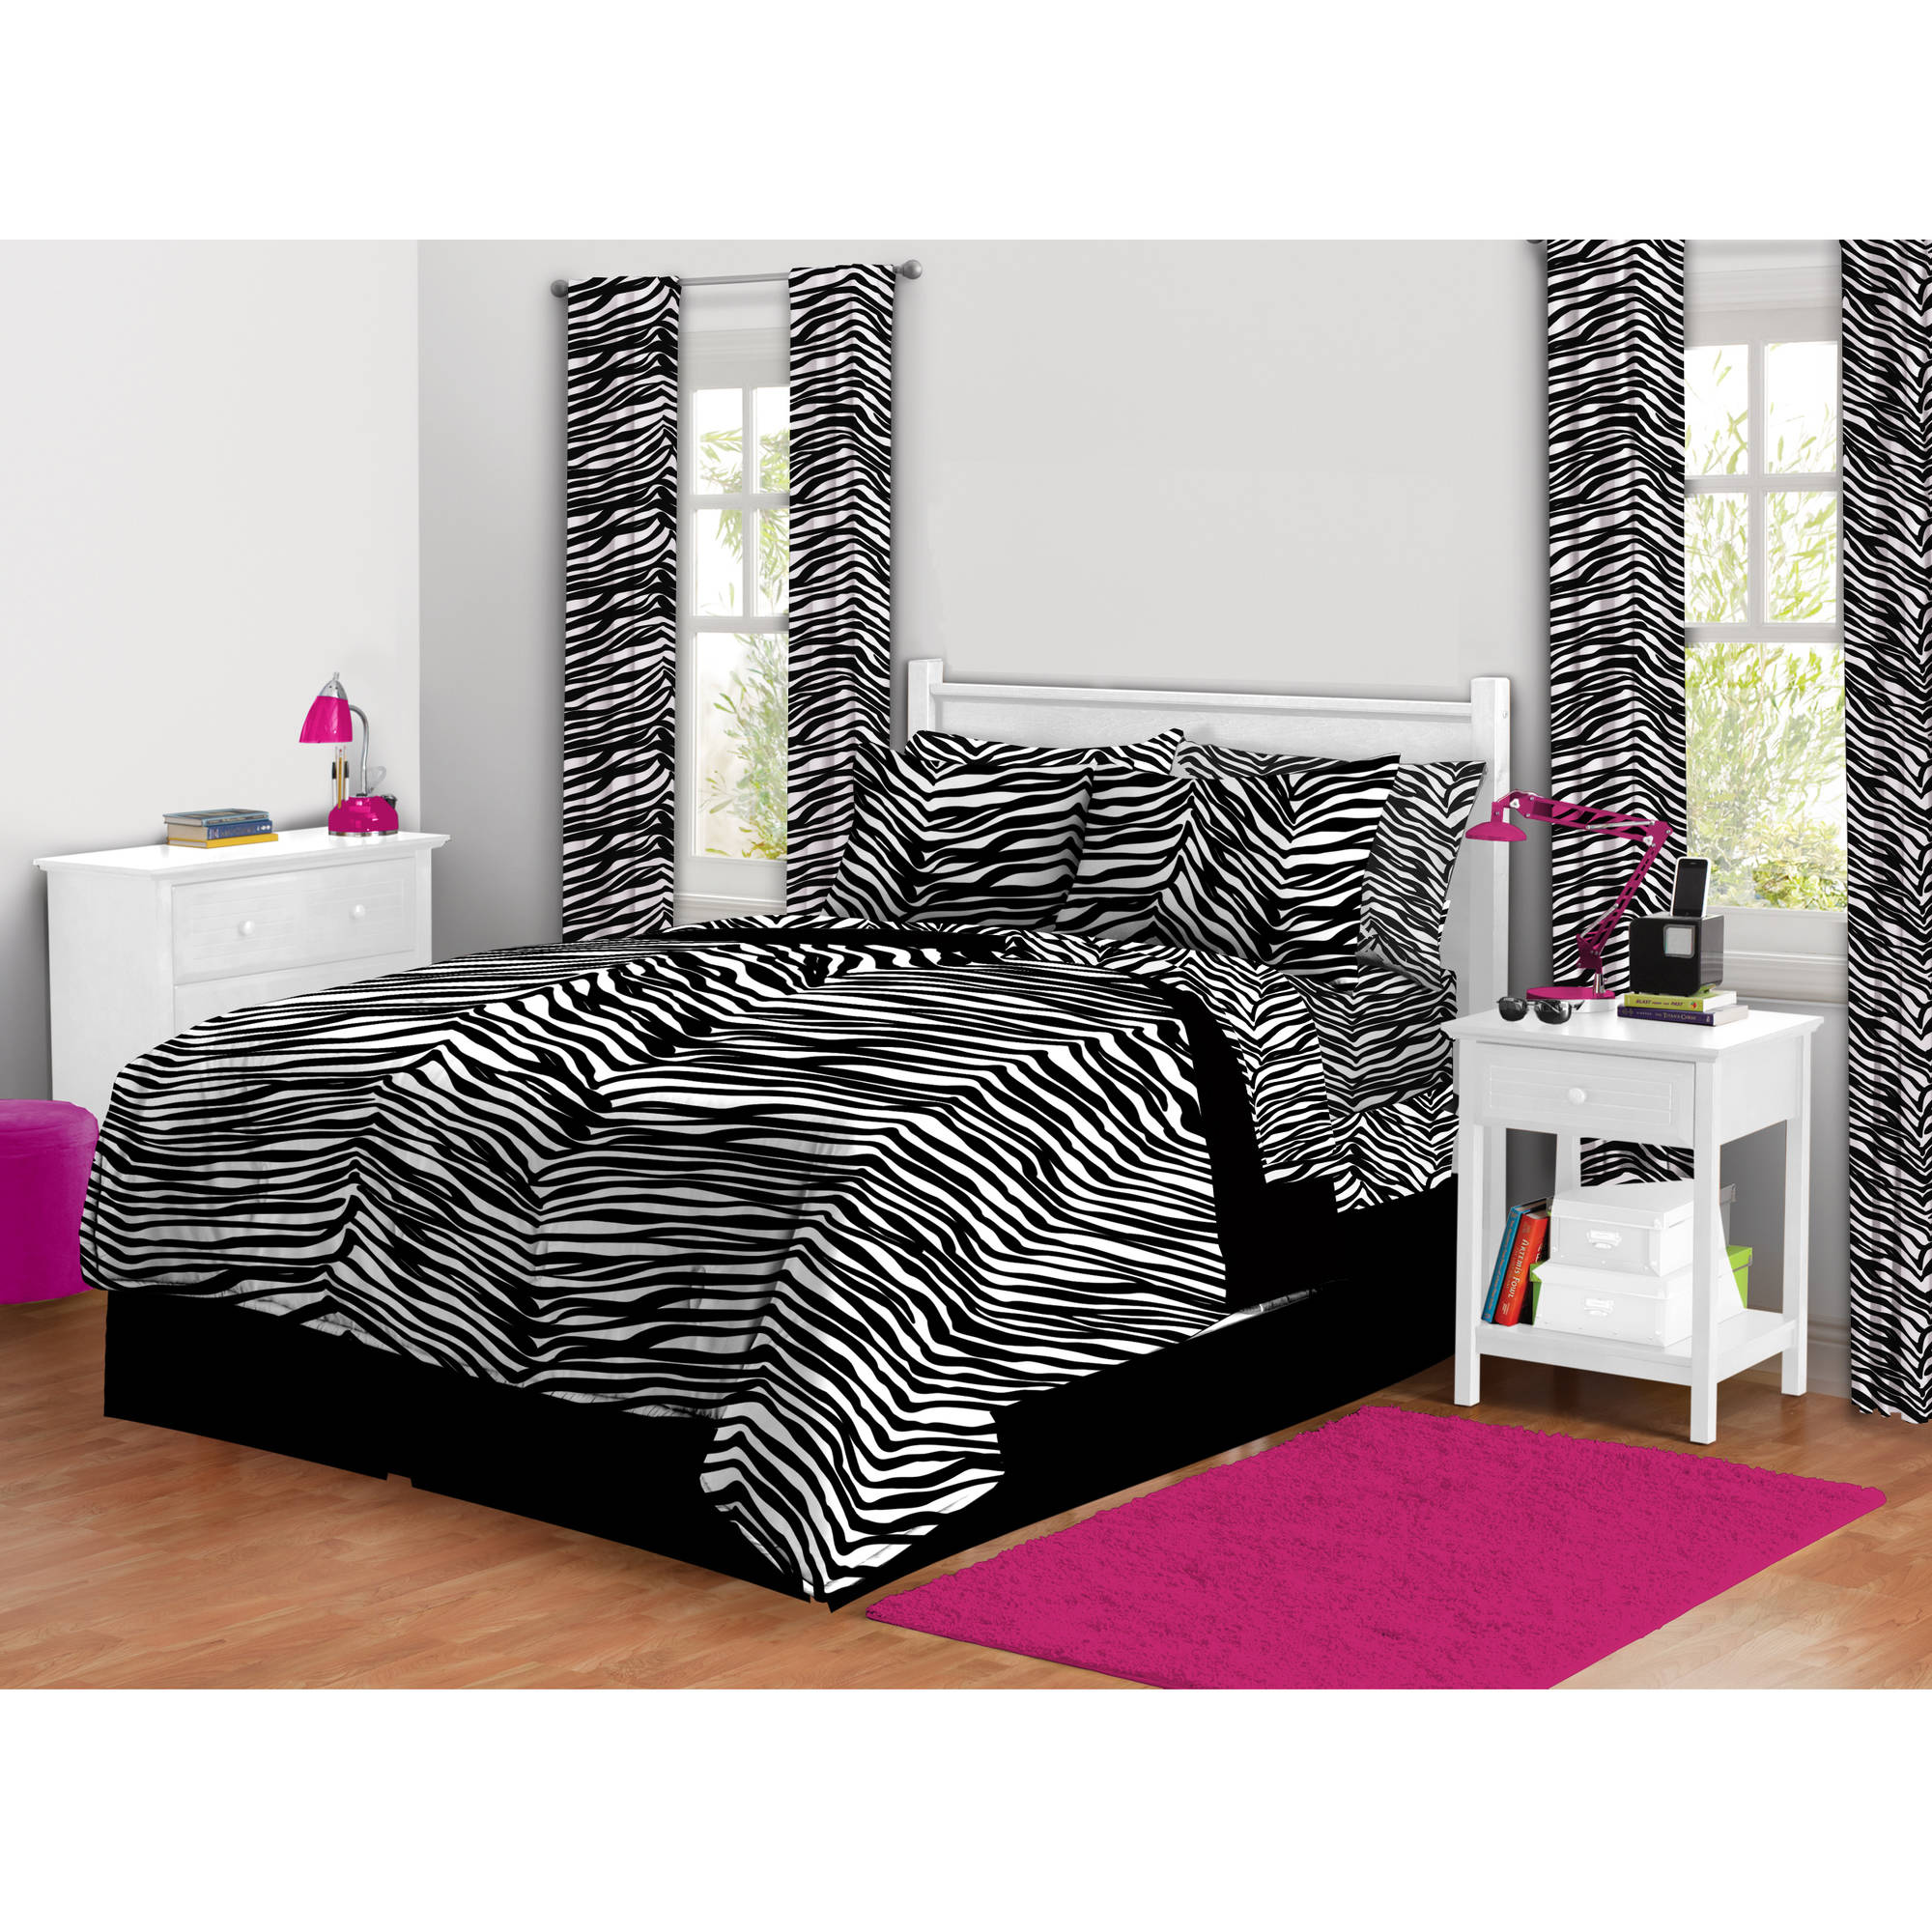 Zebra Animal Print Queen Size 7 Piece Bed In A Bag Bedding